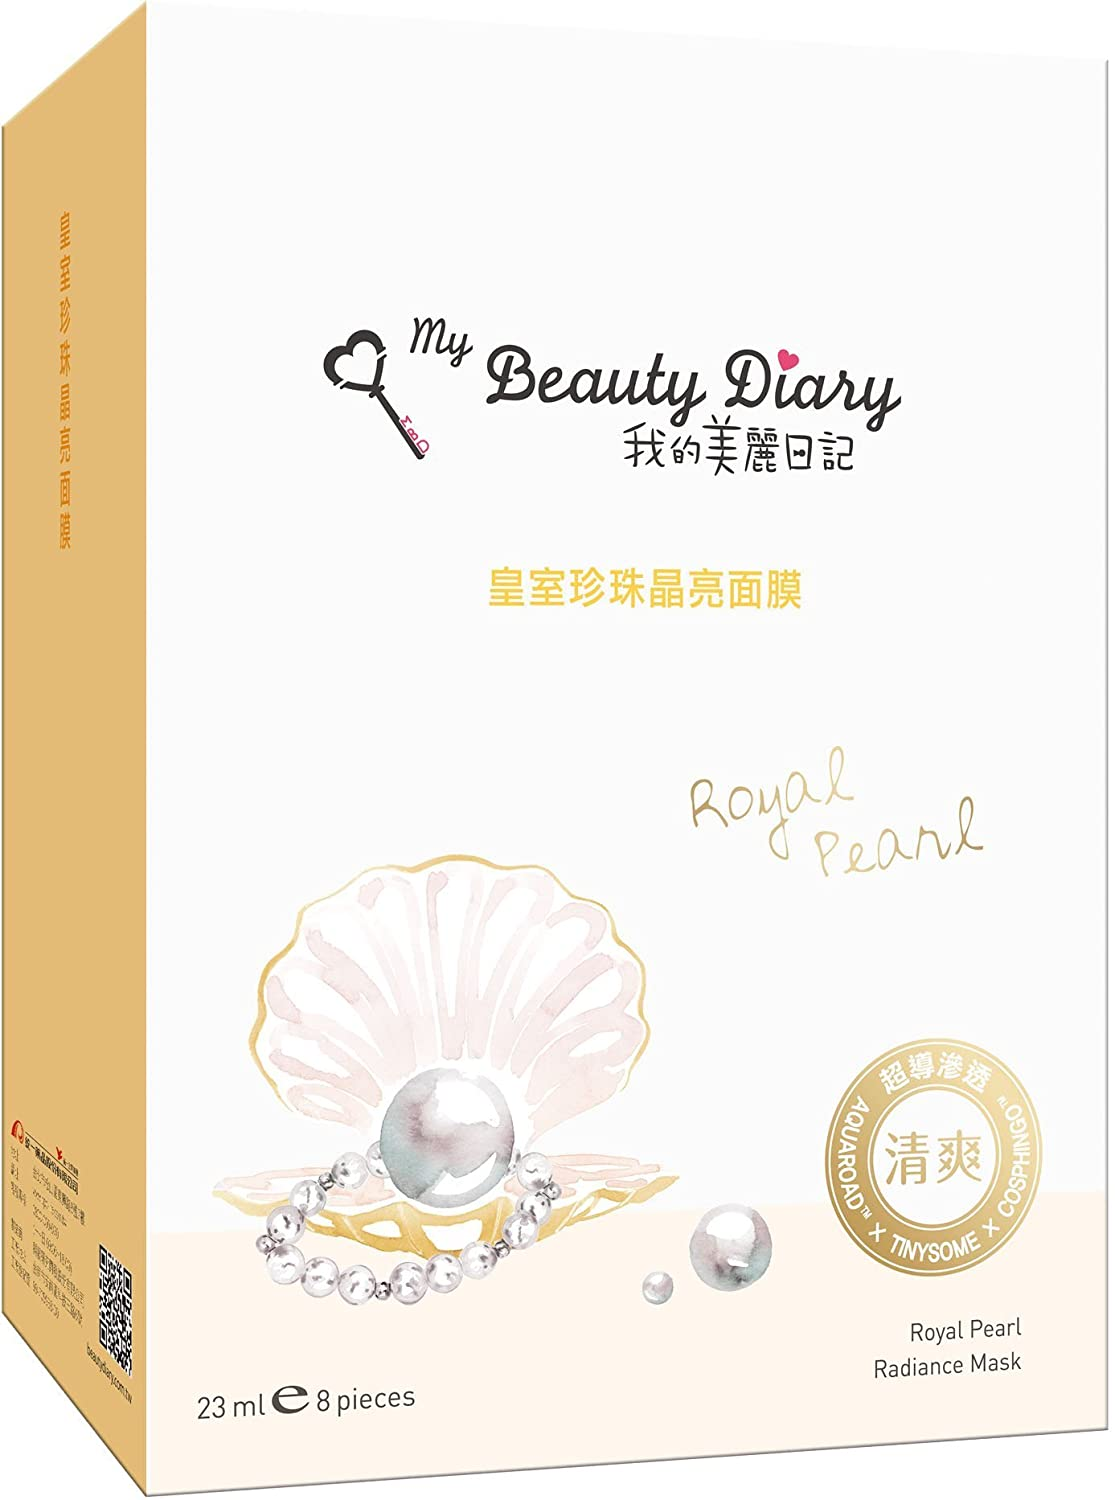 MY BEAUTY DIARY - Royal Pearl Radiance Mask